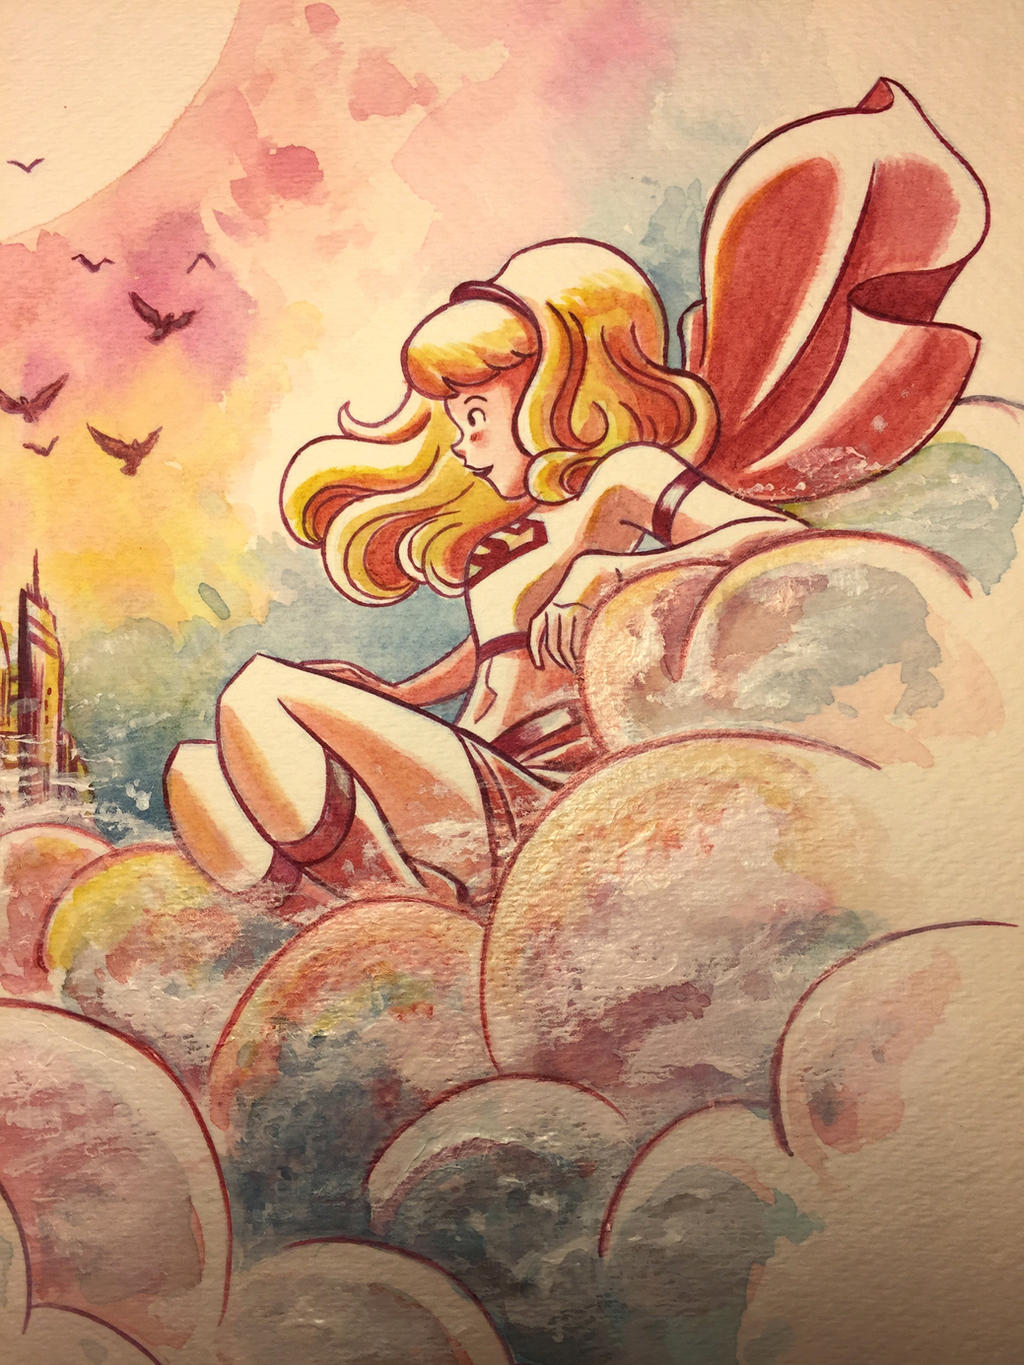 Cloud Chillin' detail by mikemaihack